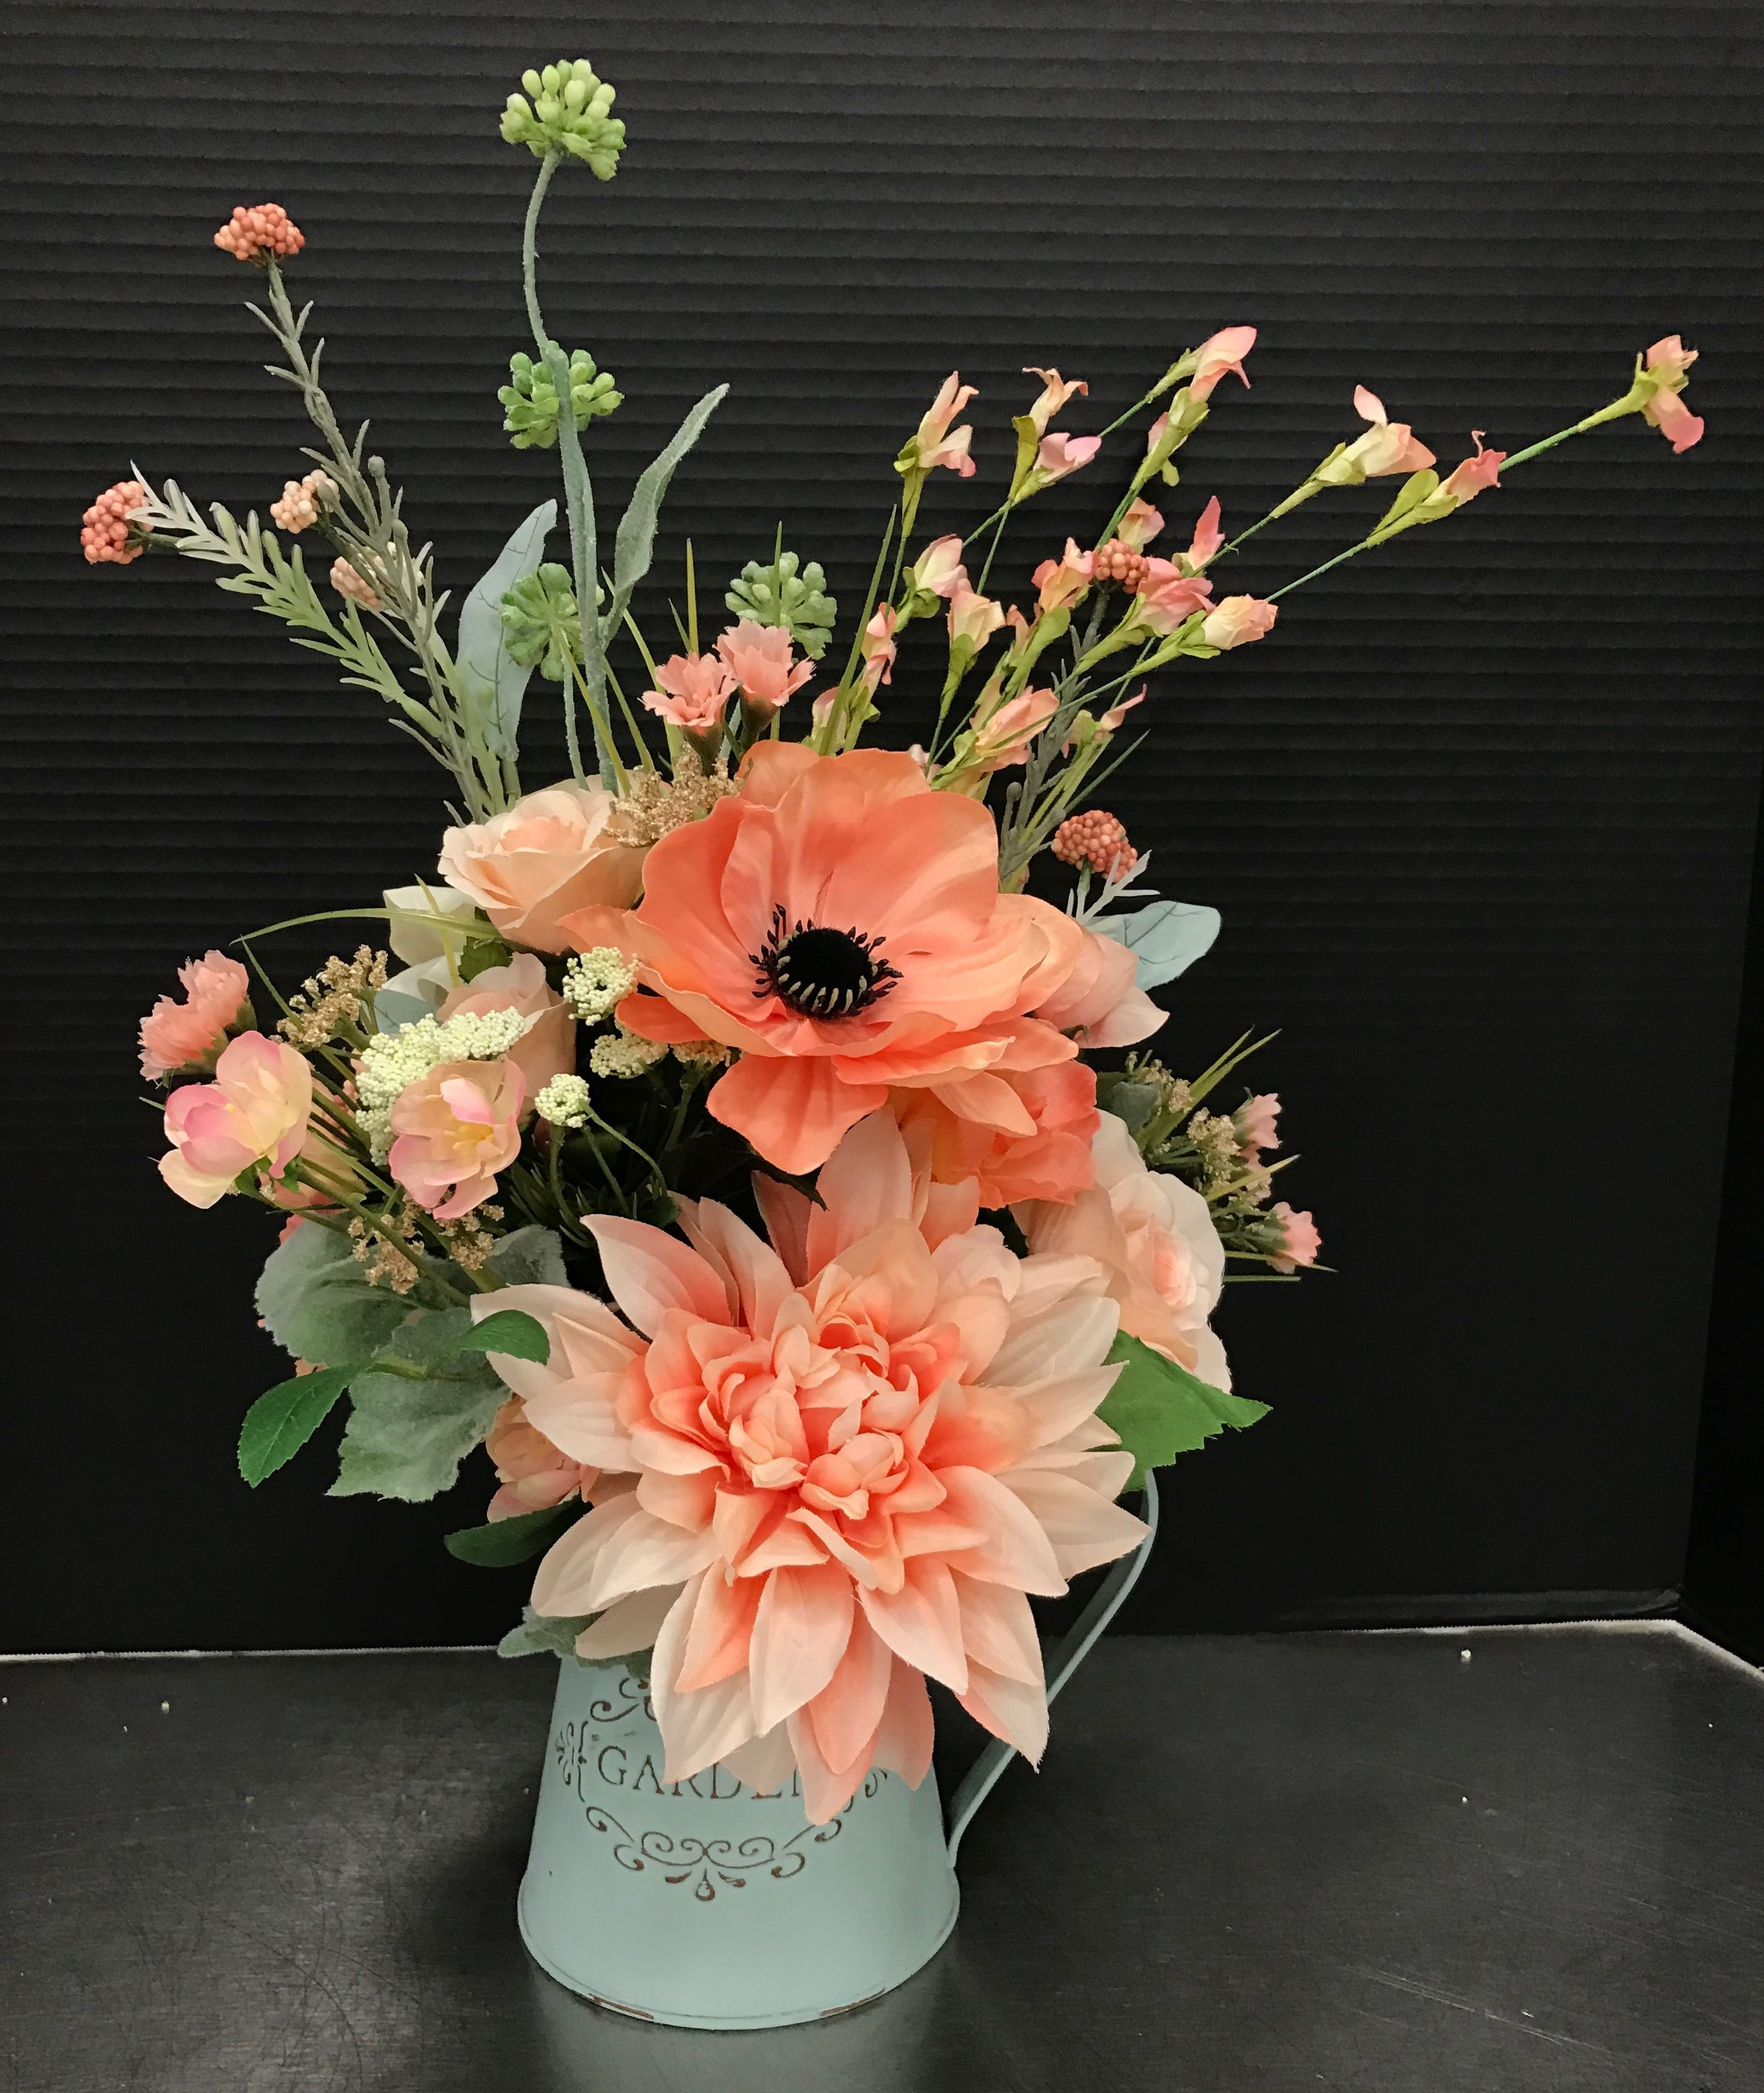 Summer Flower Arrangements: Peachy Pitcher 2017 By Andrea